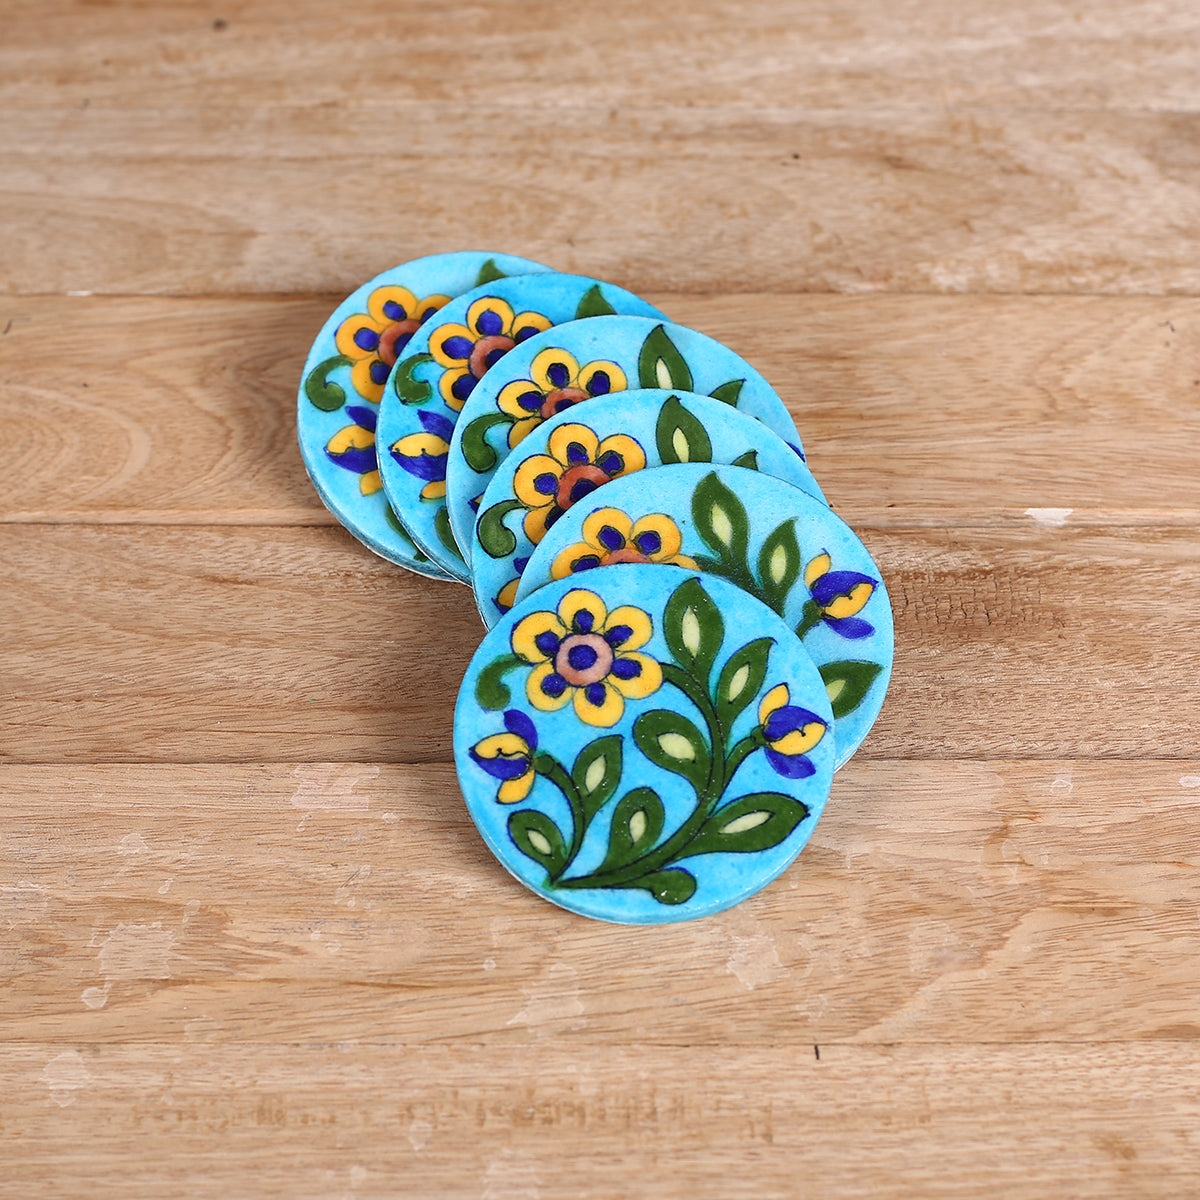 Jaipur Blue Pottery Coasters in Blue Yellow Floral Design